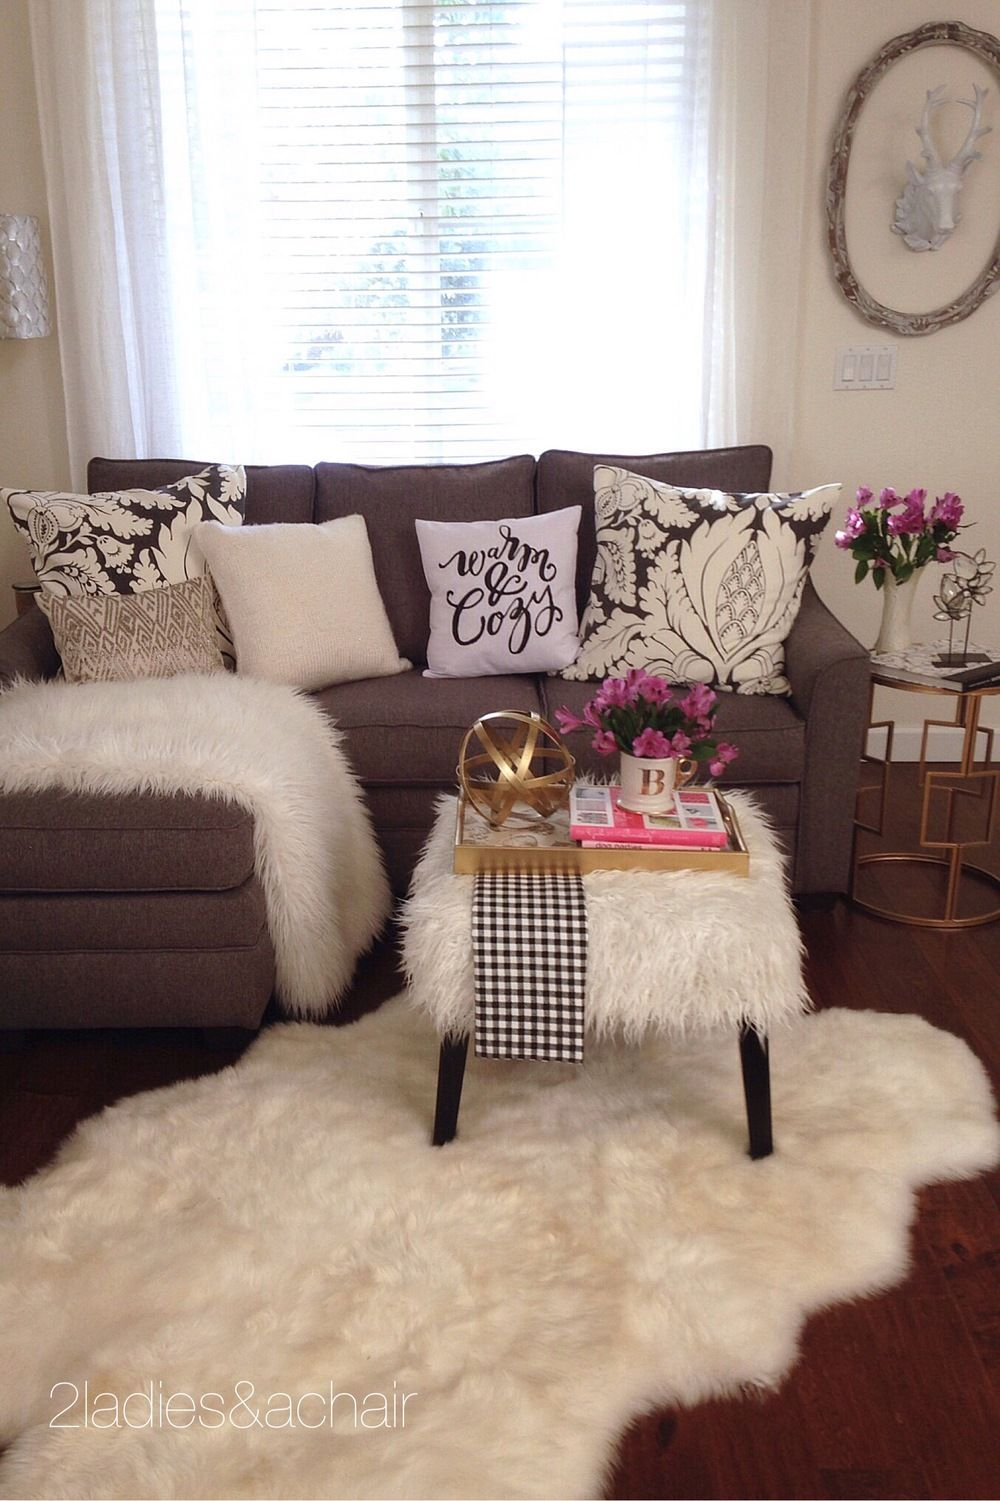 Feb 25 using the basics layers and textures living - Decor ideas for living room apartment ...